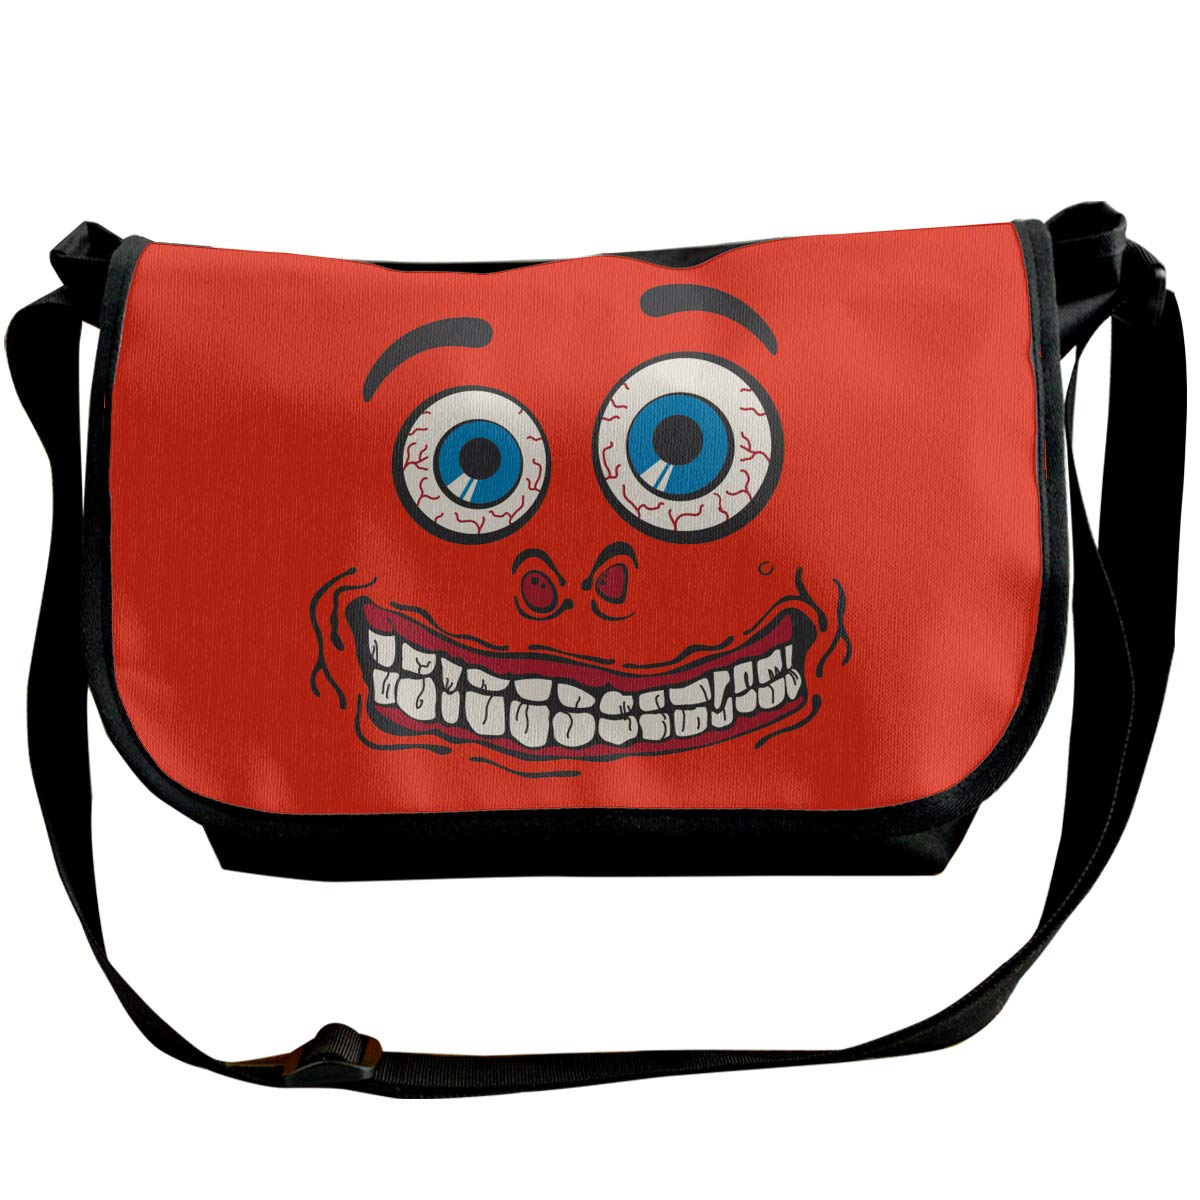 Mens Womens Fashion Cross-Body Bag Silly Face Single Shoulder Pack For Business Travel School Or Leisure